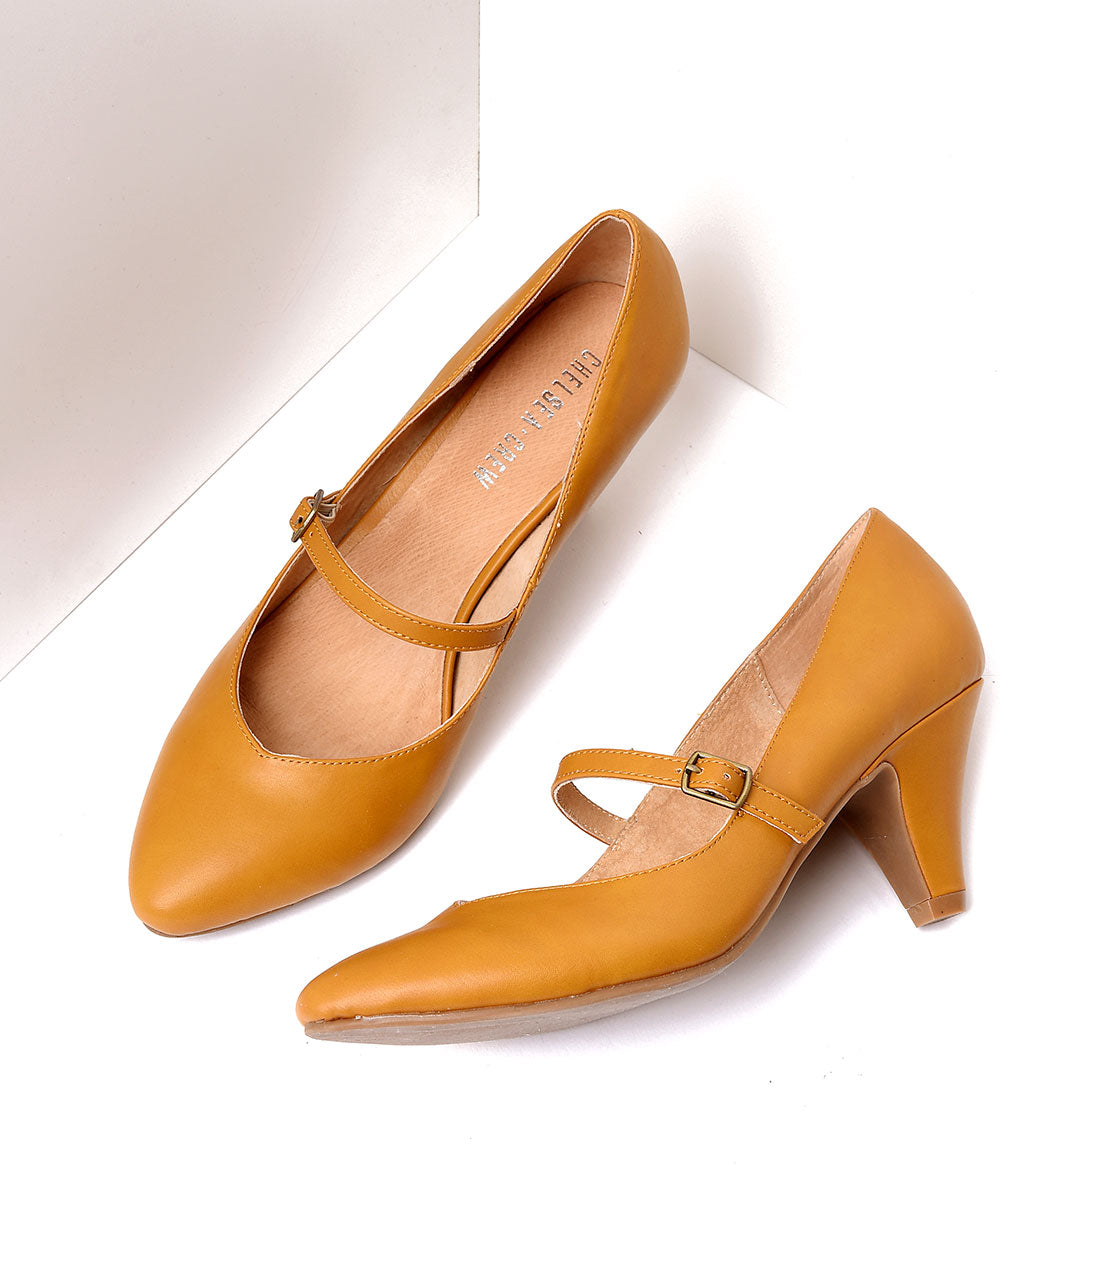 1950s Shoe Styles: Heels, Flats, Sandals, Saddles Shoes Mustard Yellow Leatherette Mary Jane Pumps $62.00 AT vintagedancer.com